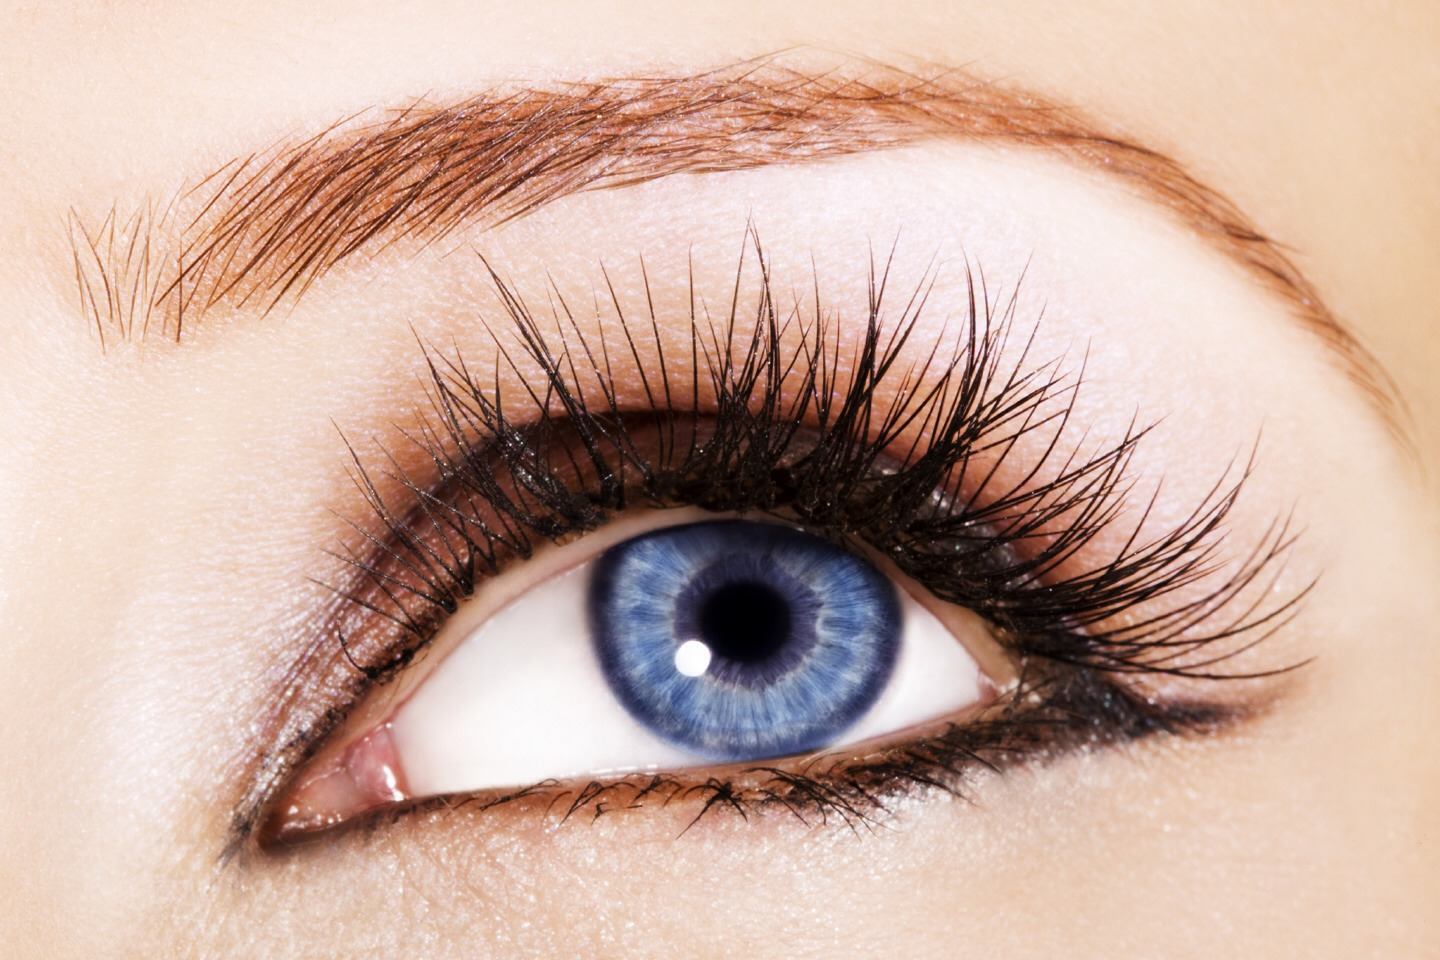 Use Vaseline on your eyelashes to make them grow longer! It's also a great conditioner for your eyelashes!